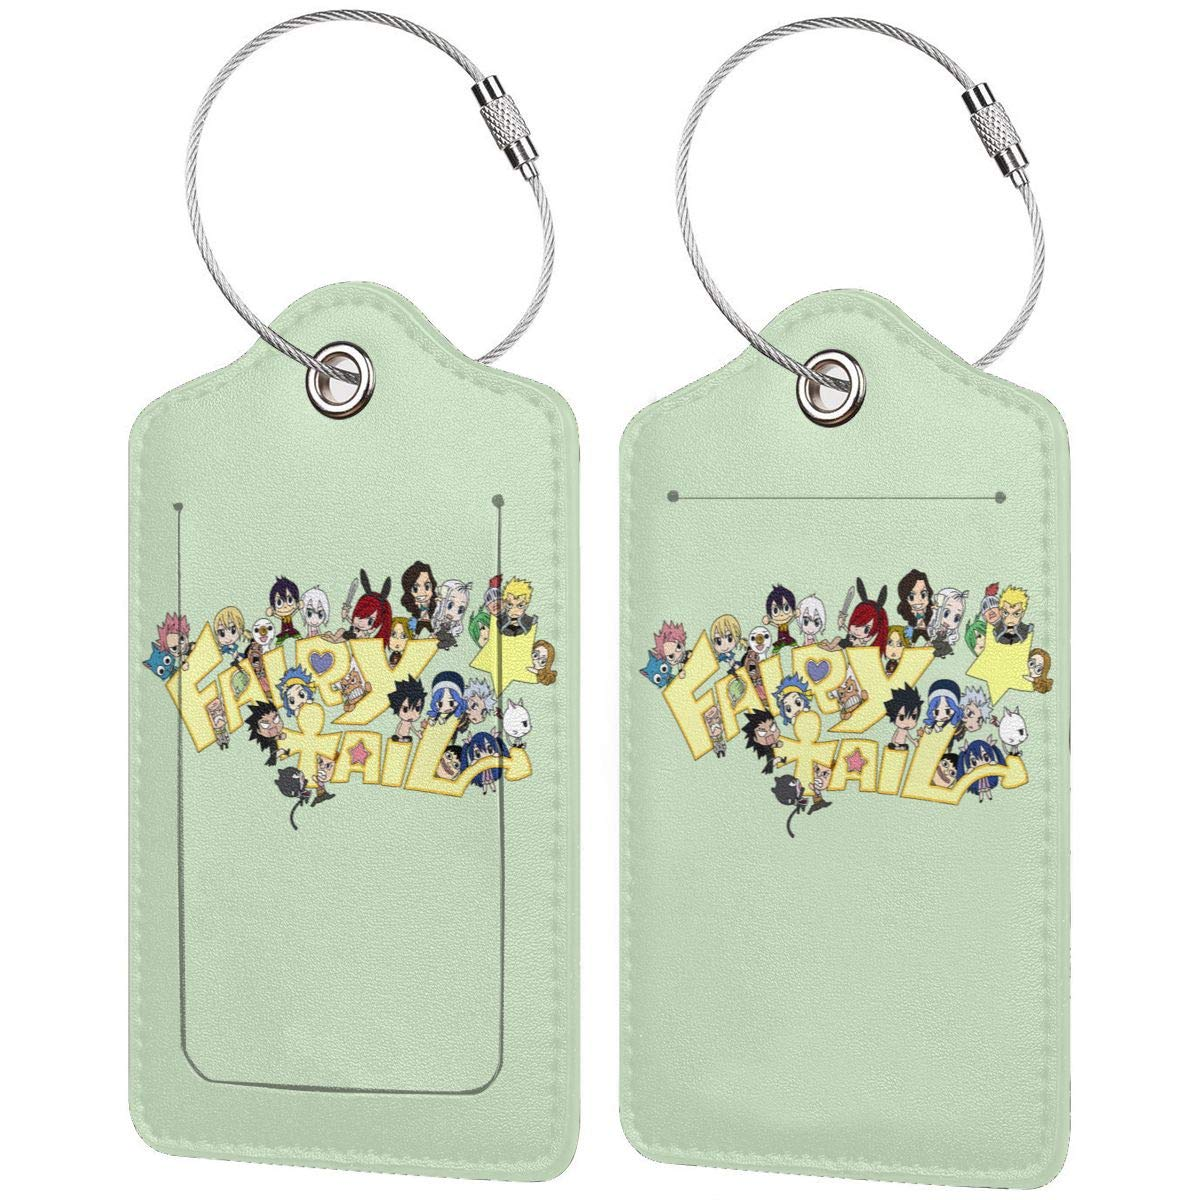 Fairy Tail Fans Leather Luggage Tag Travel ID Label For Baggage Suitcase